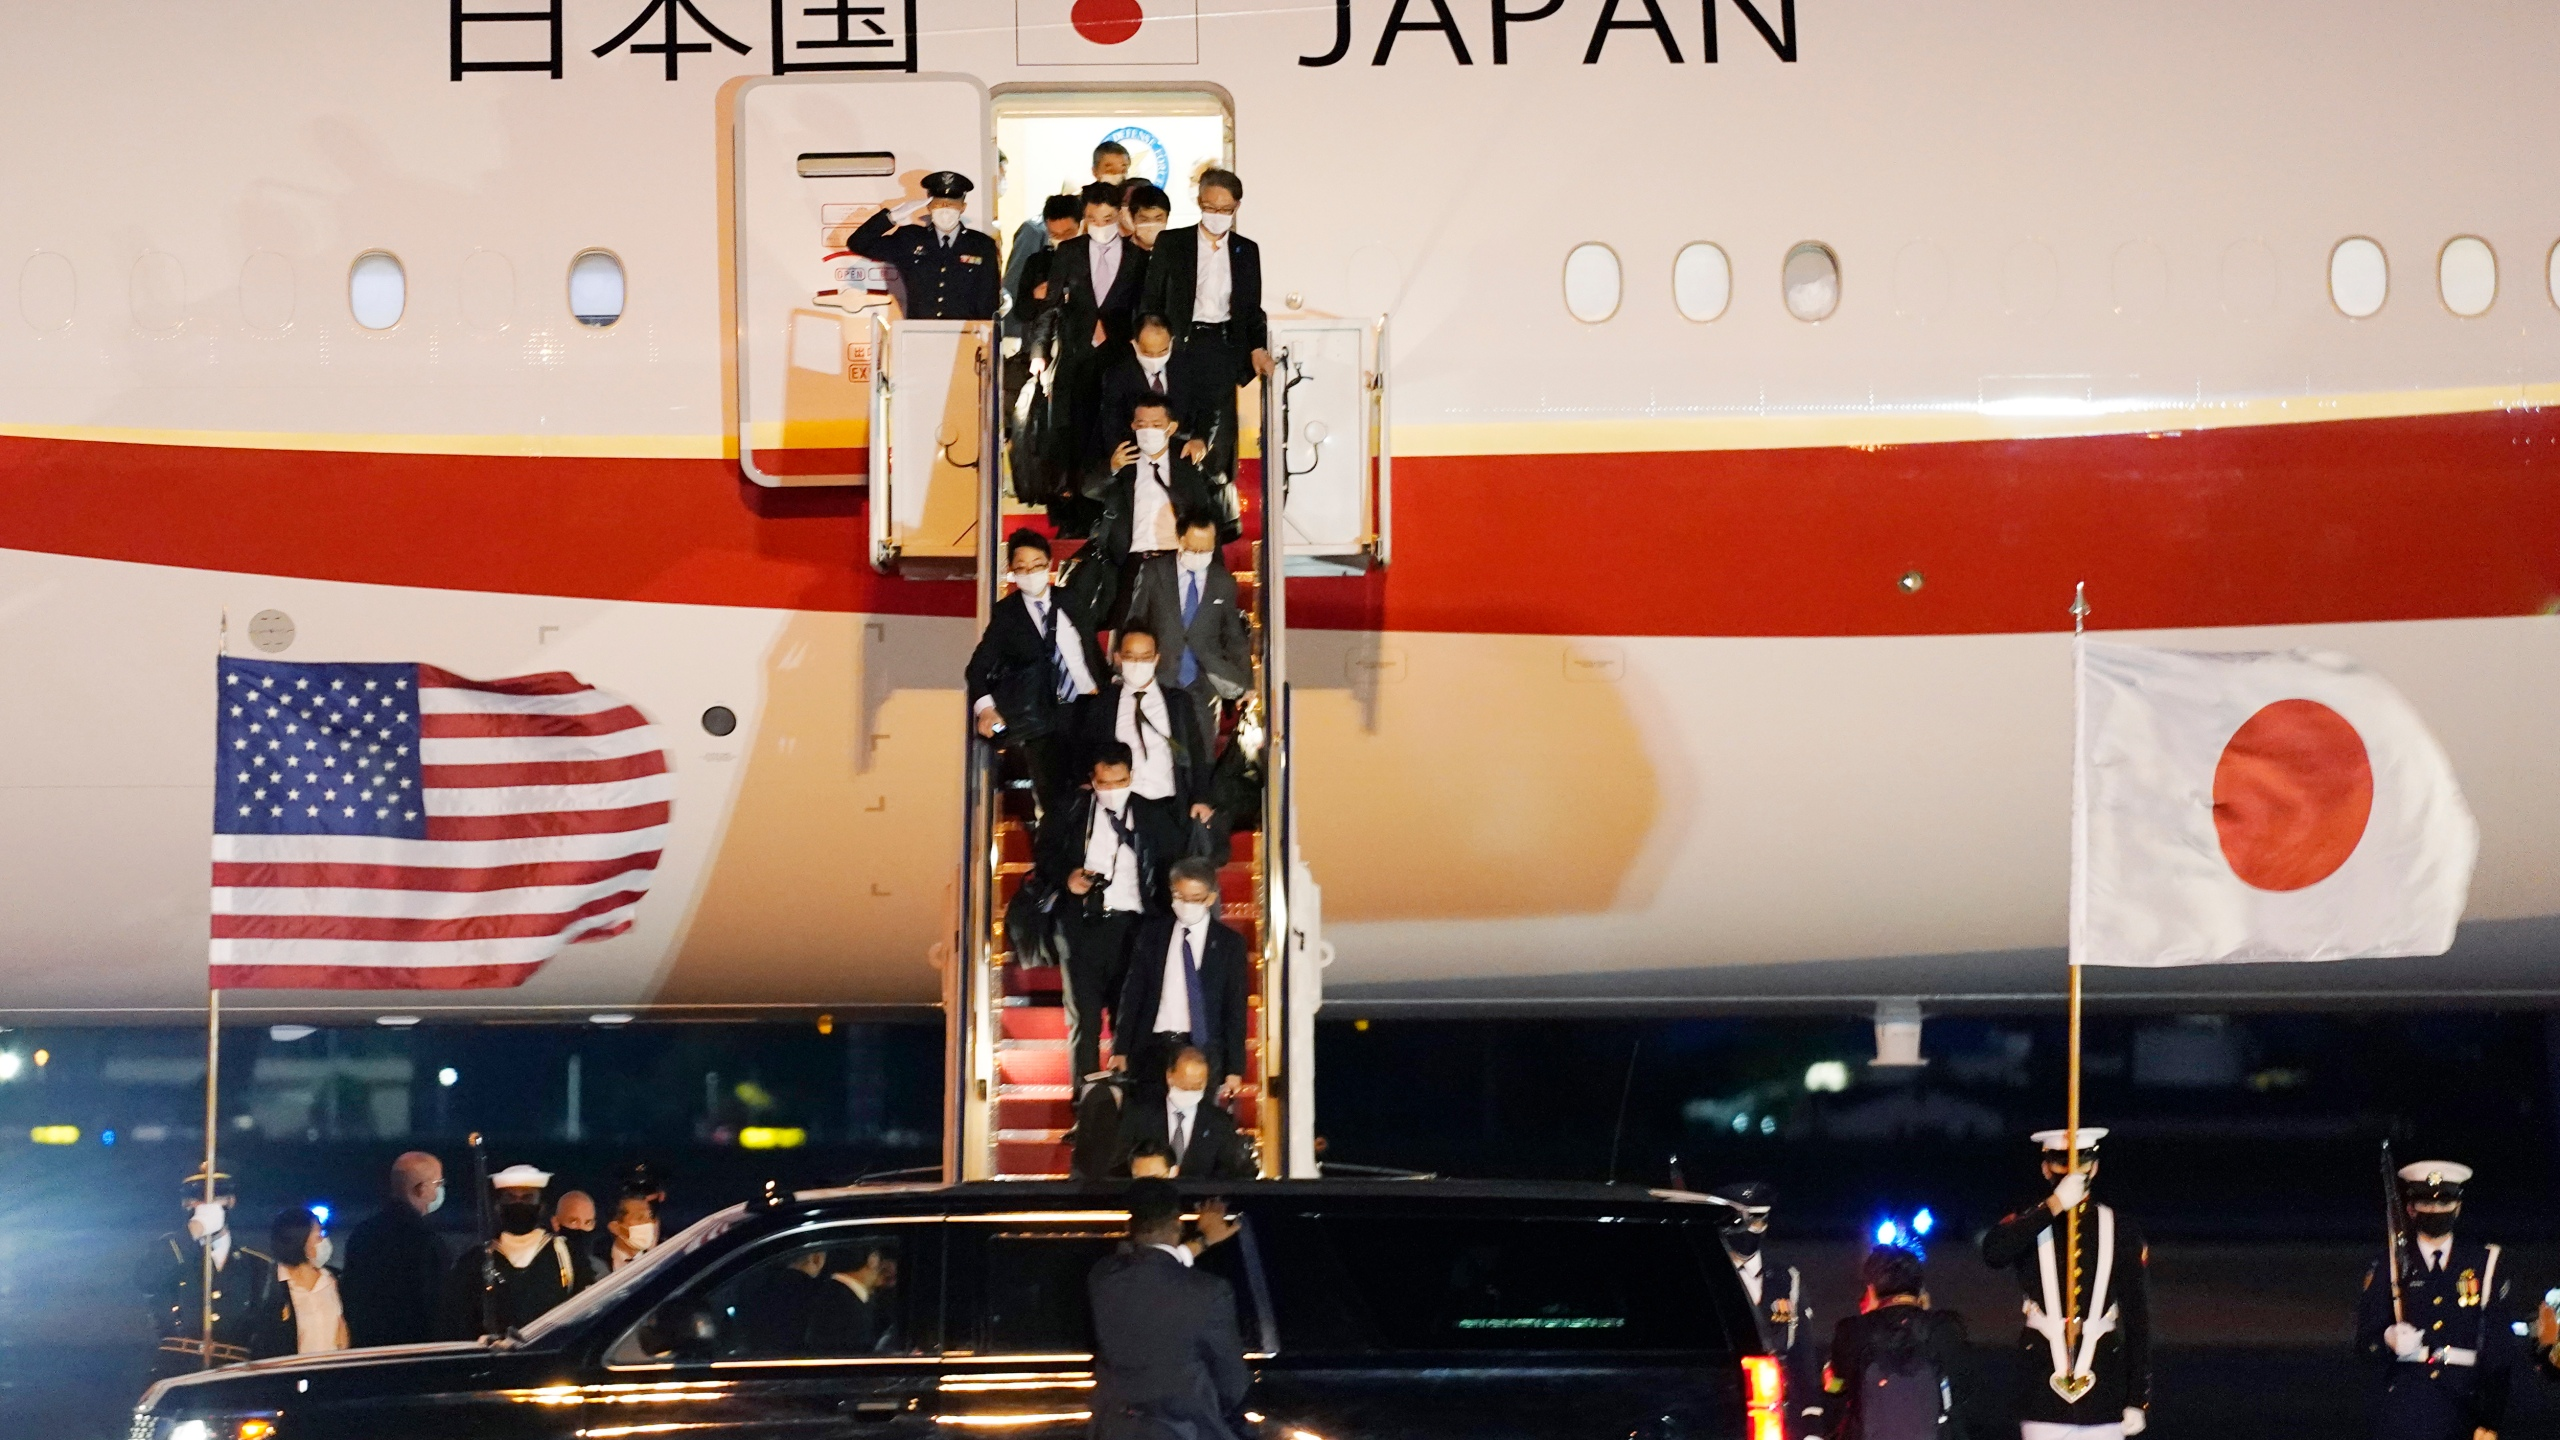 The Japanese delegation walks off the plane after Japanese Prime Minister Yoshihide Suga arrived at Andrews Air Force Base, Md., Thursday, April 15, 2021. Suga will be the first foreign leader to have a face-to-face meeting with President Joe Biden, when they meet at the White House on Friday. (AP Photo/Manuel Balce Ceneta)